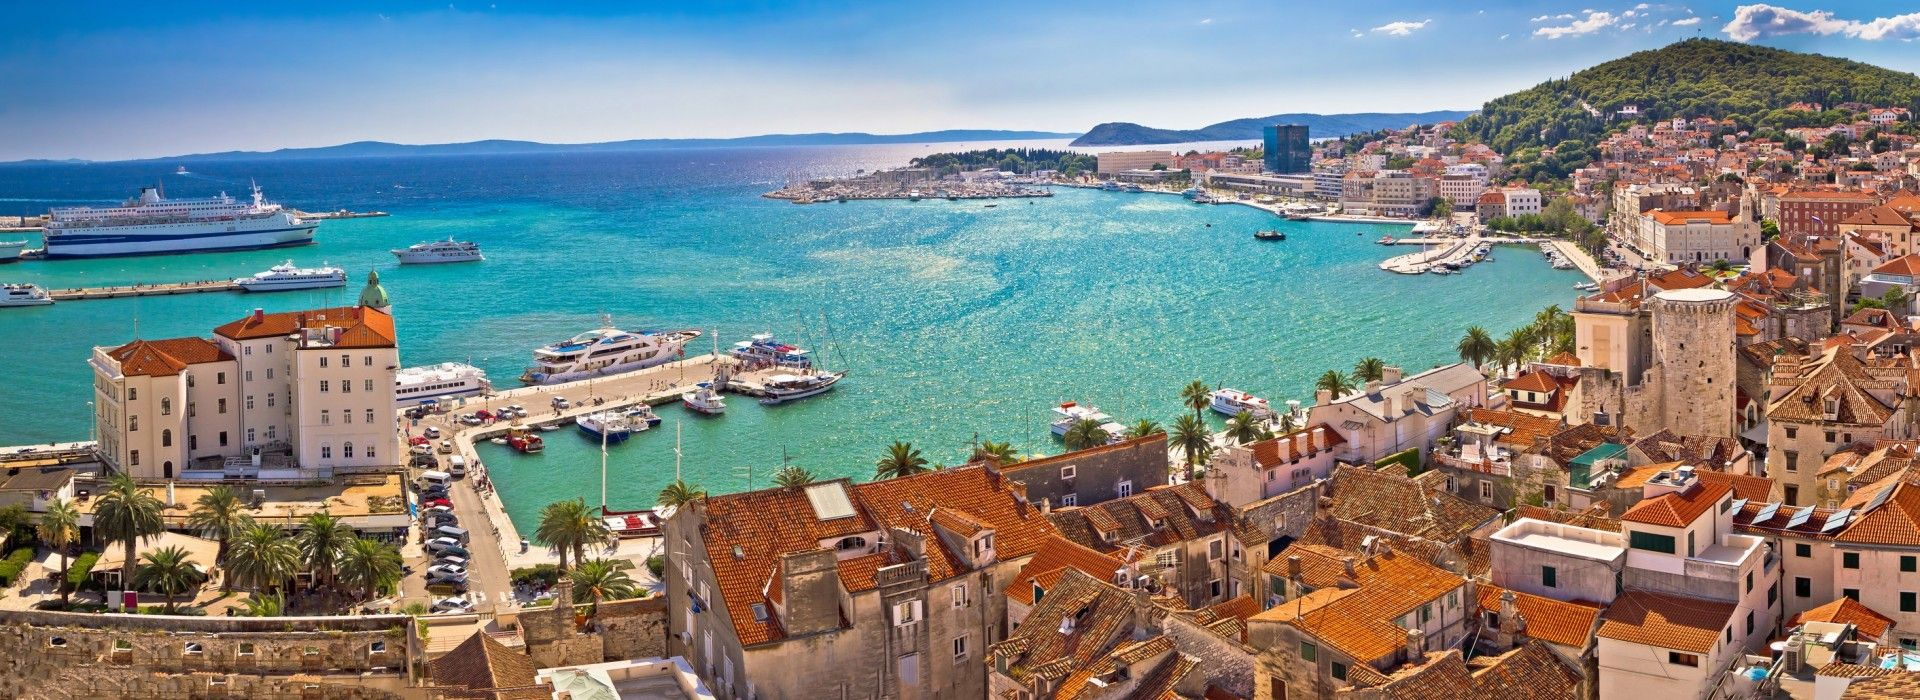 Food, wine, events and nightlife Tours in Balkans